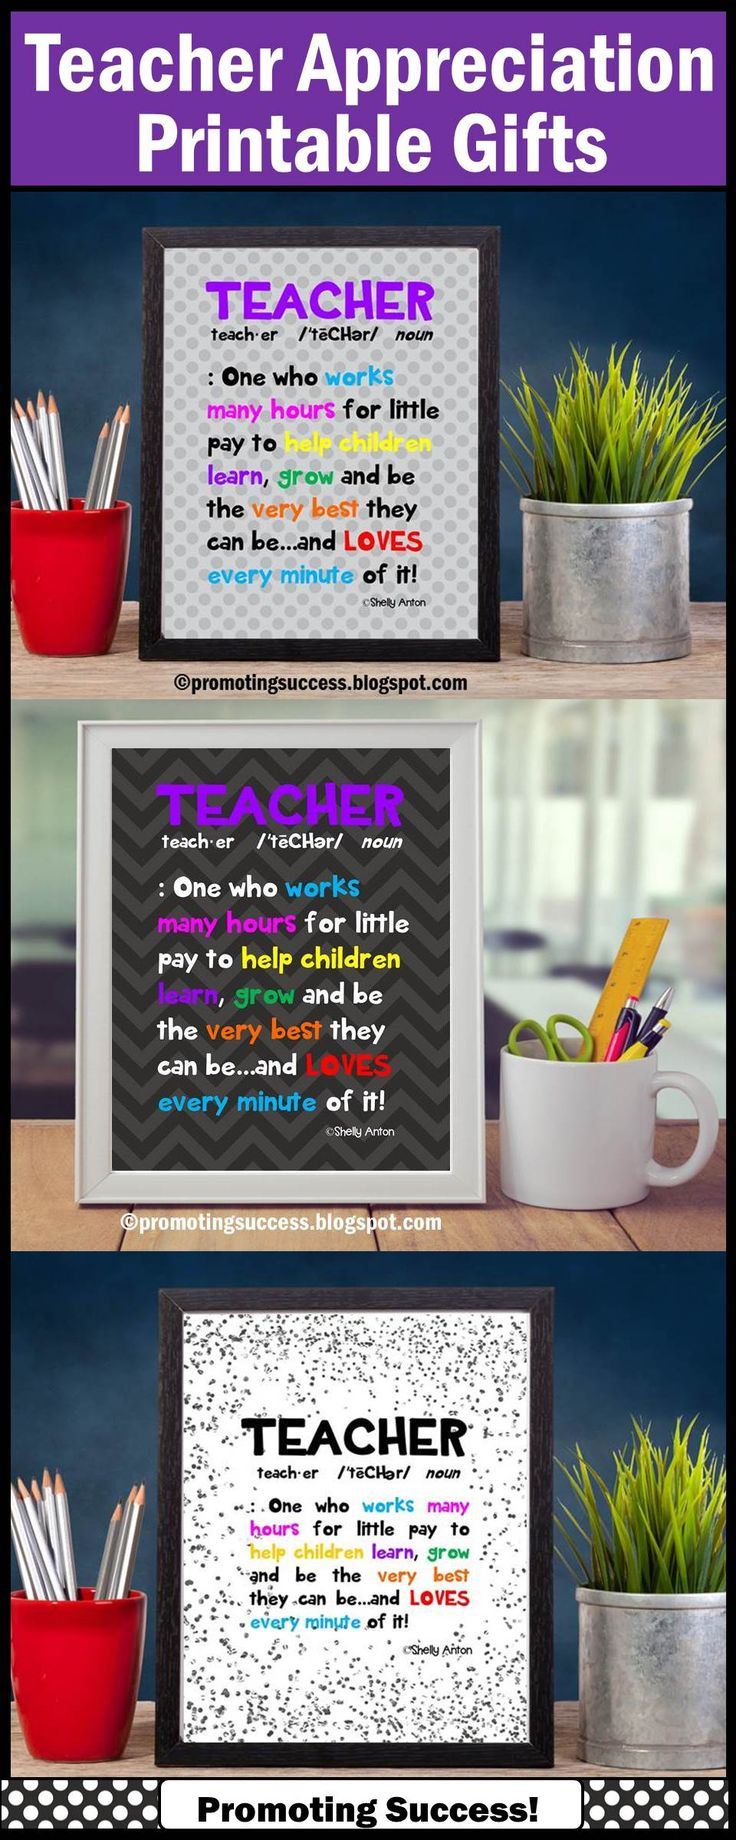 Classroom Ideas By Teachers For Teachers ~ Best images about gifts on pinterest homemade kids